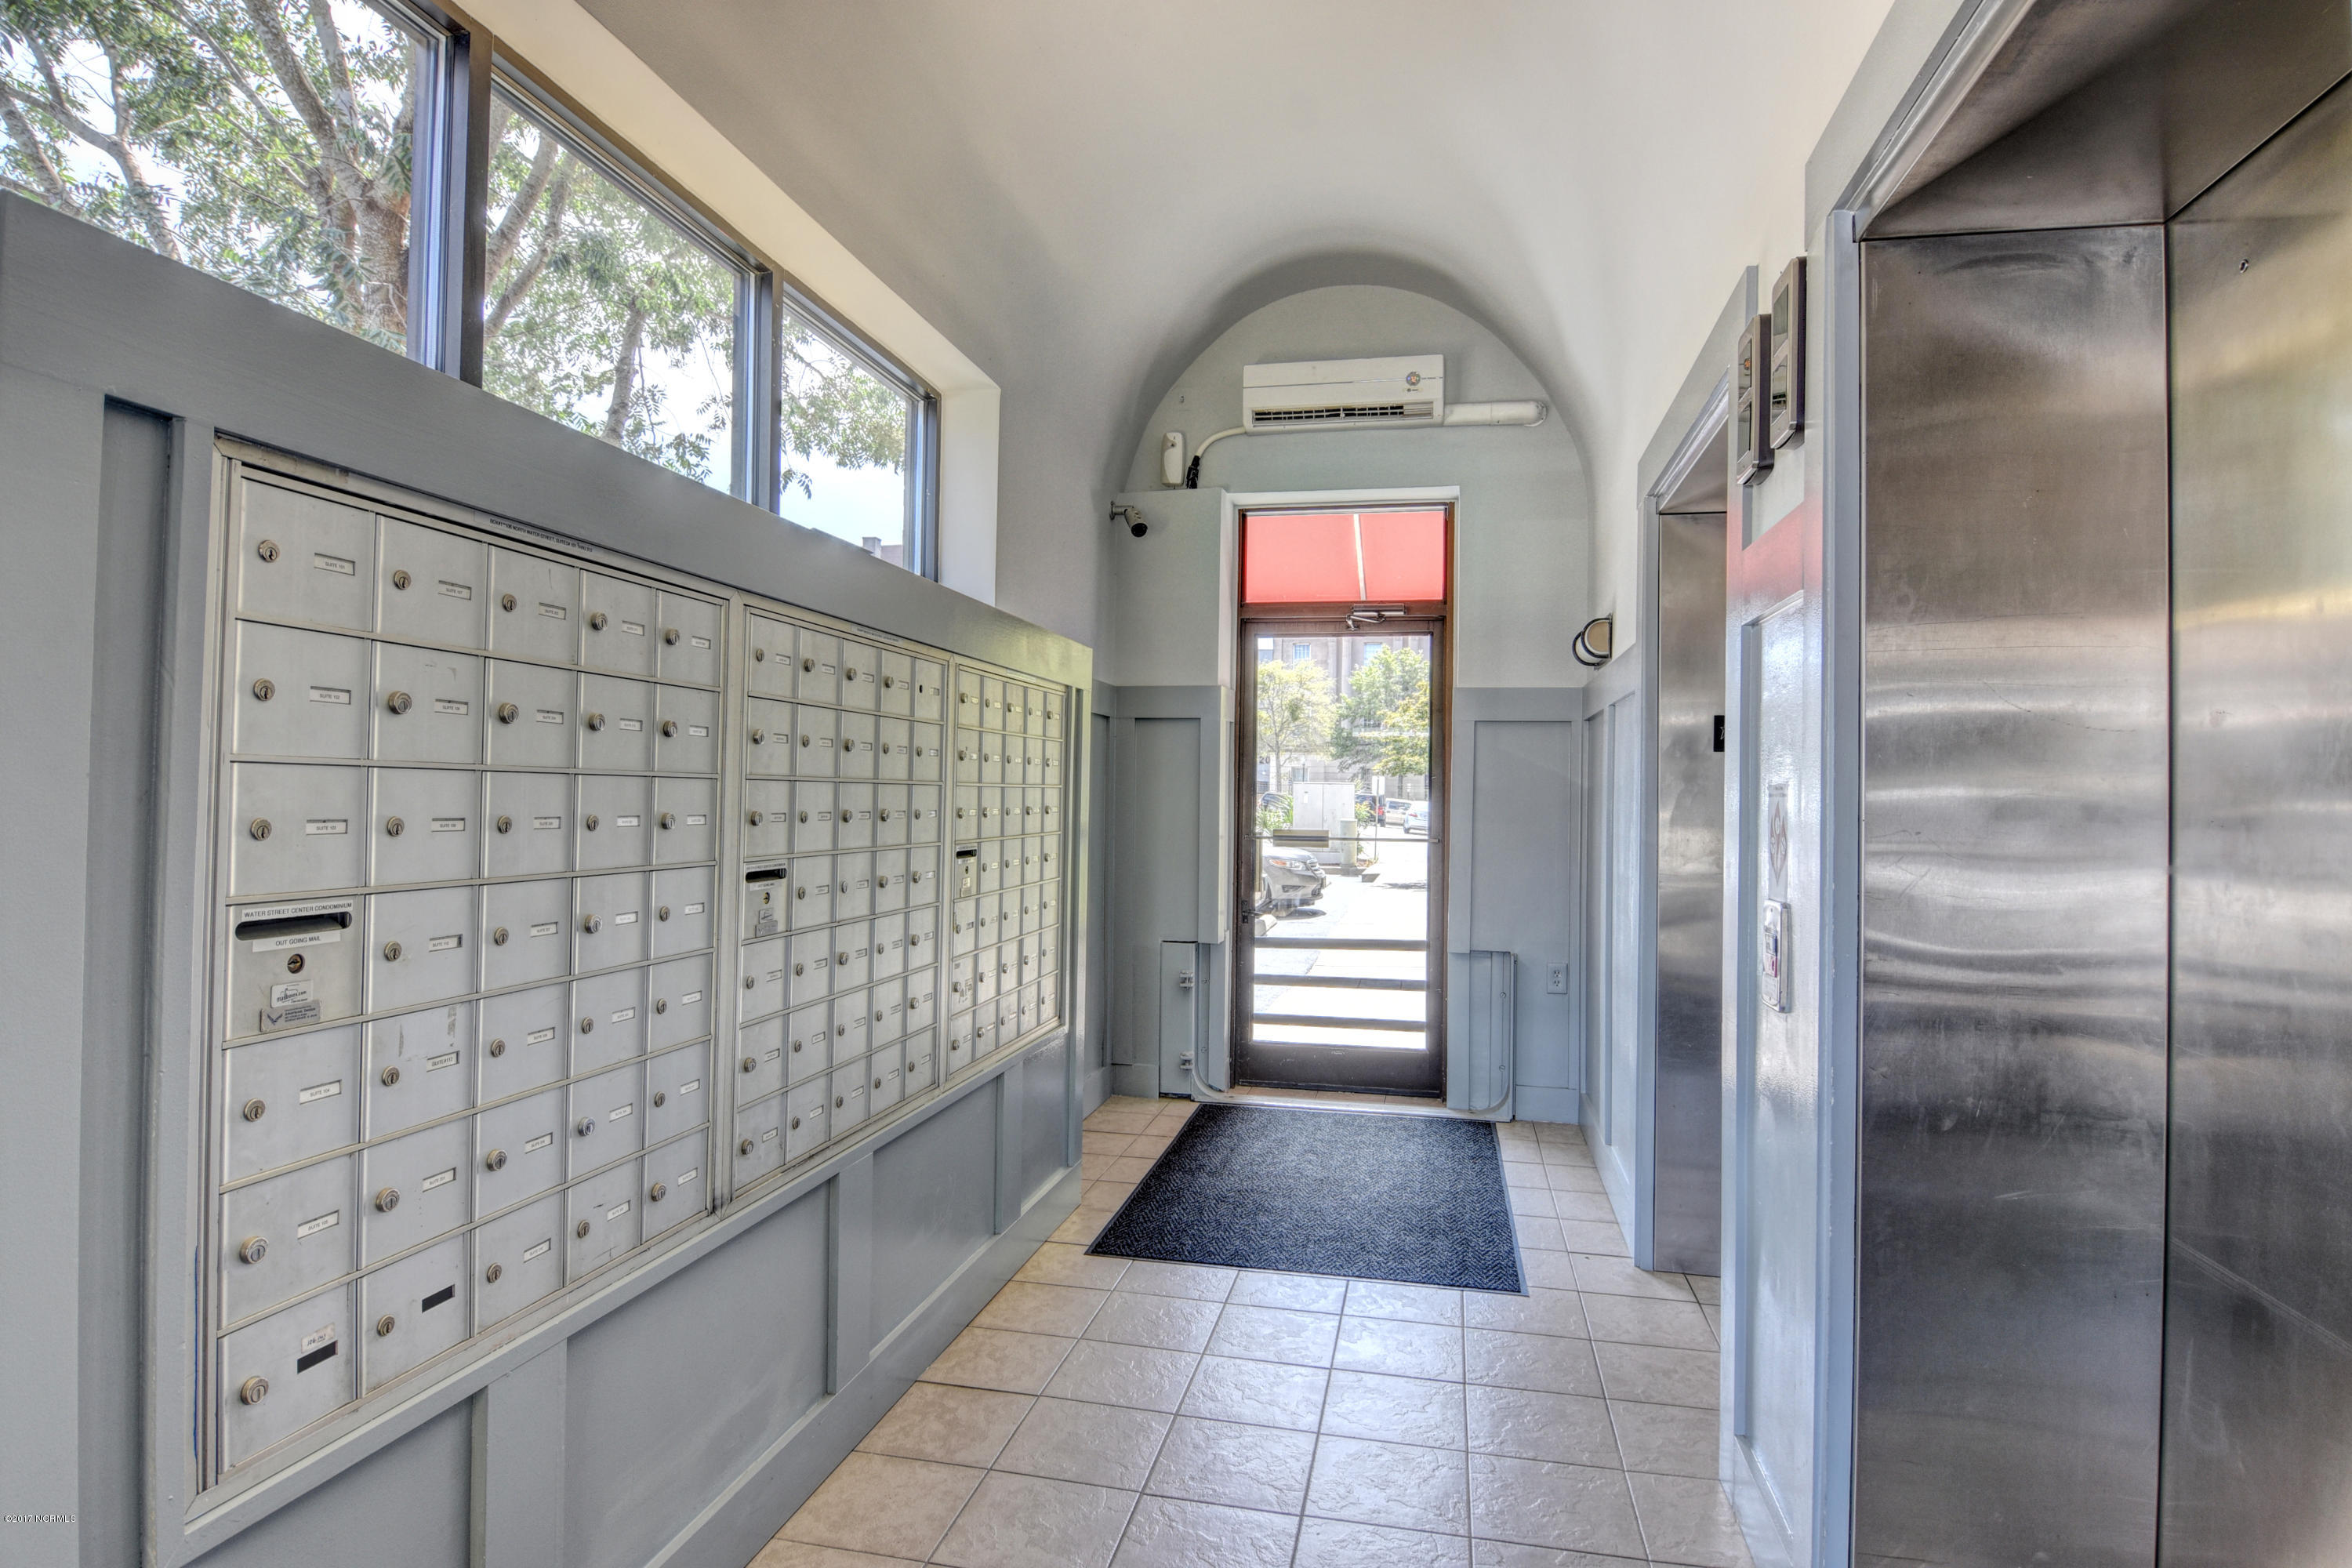 106 Water Street, Wilmington, North Carolina, 2 Bedrooms Bedrooms, 5 Rooms Rooms,2 BathroomsBathrooms,Condominium,For sale,Water,100081708